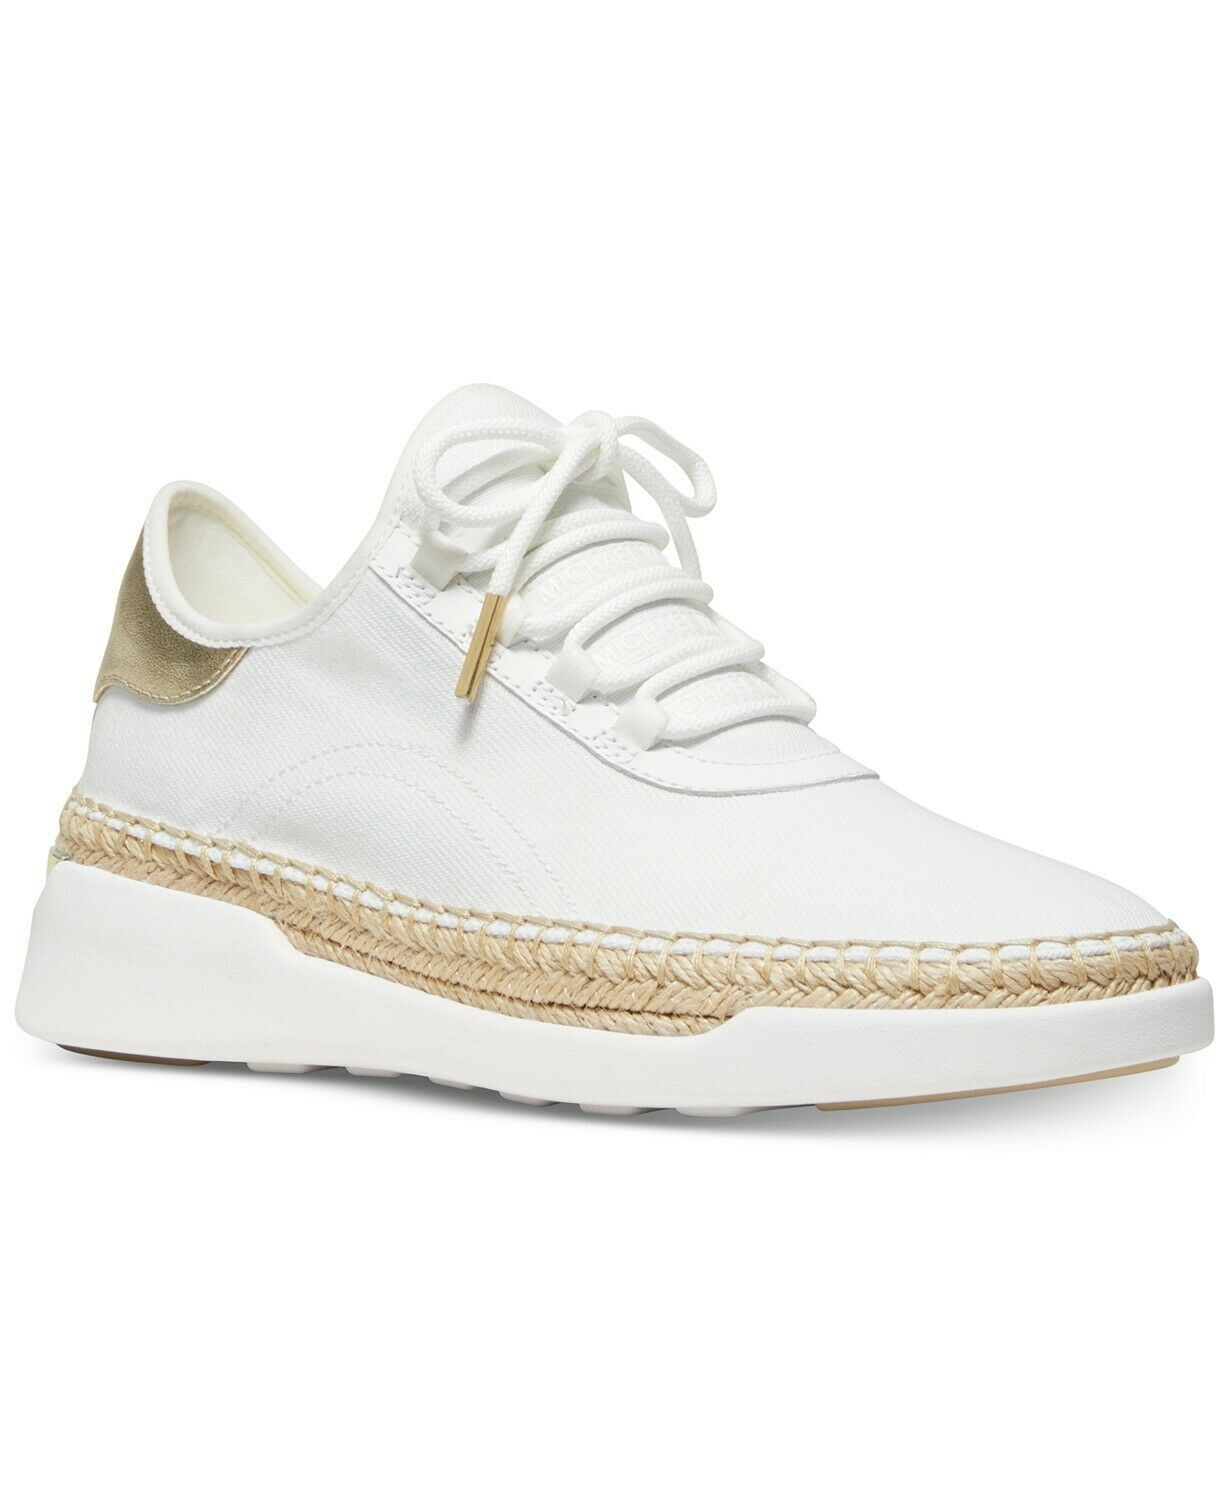 Michael Kors MK Women's Finch Lace Up Espadrille Canvas Sneakers Shoes Pale Gold